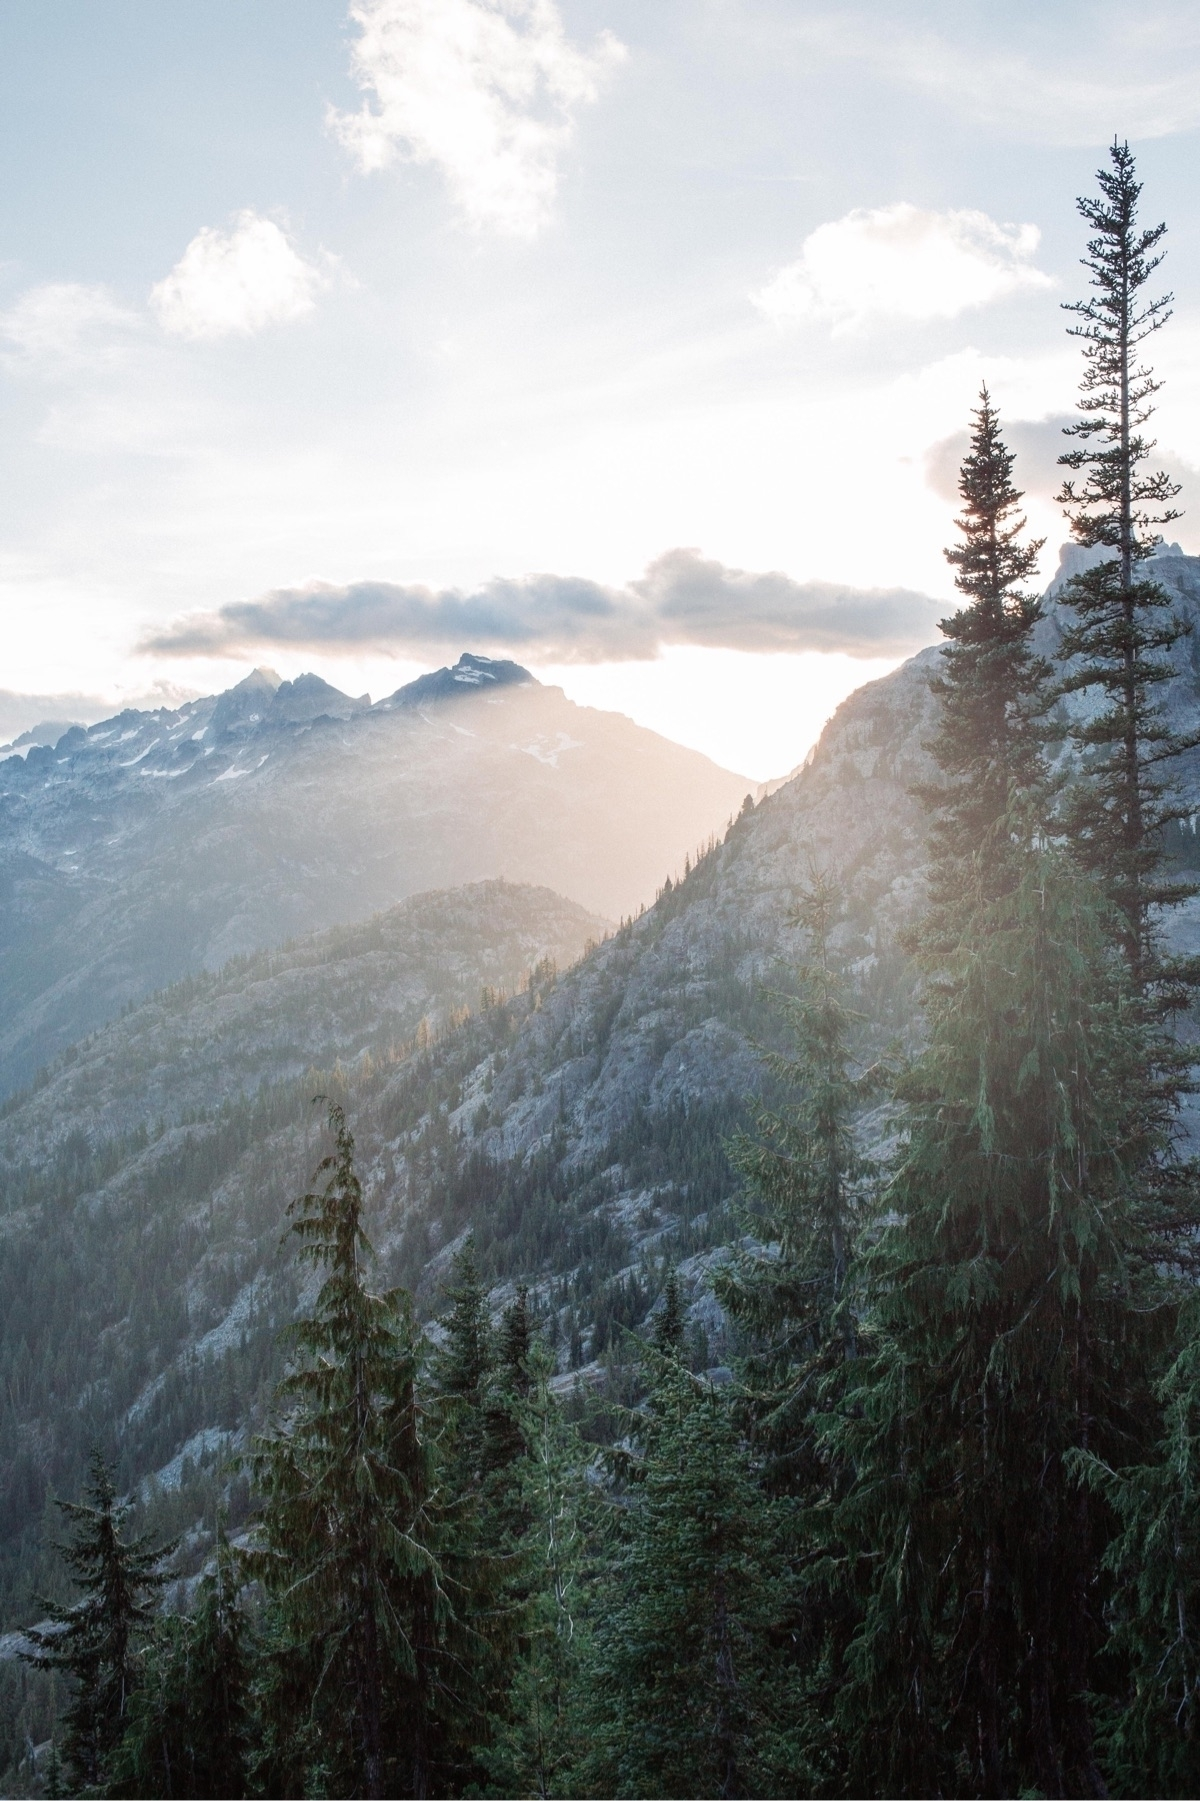 caught sunset mountains excited - brandonscottherrell | ello